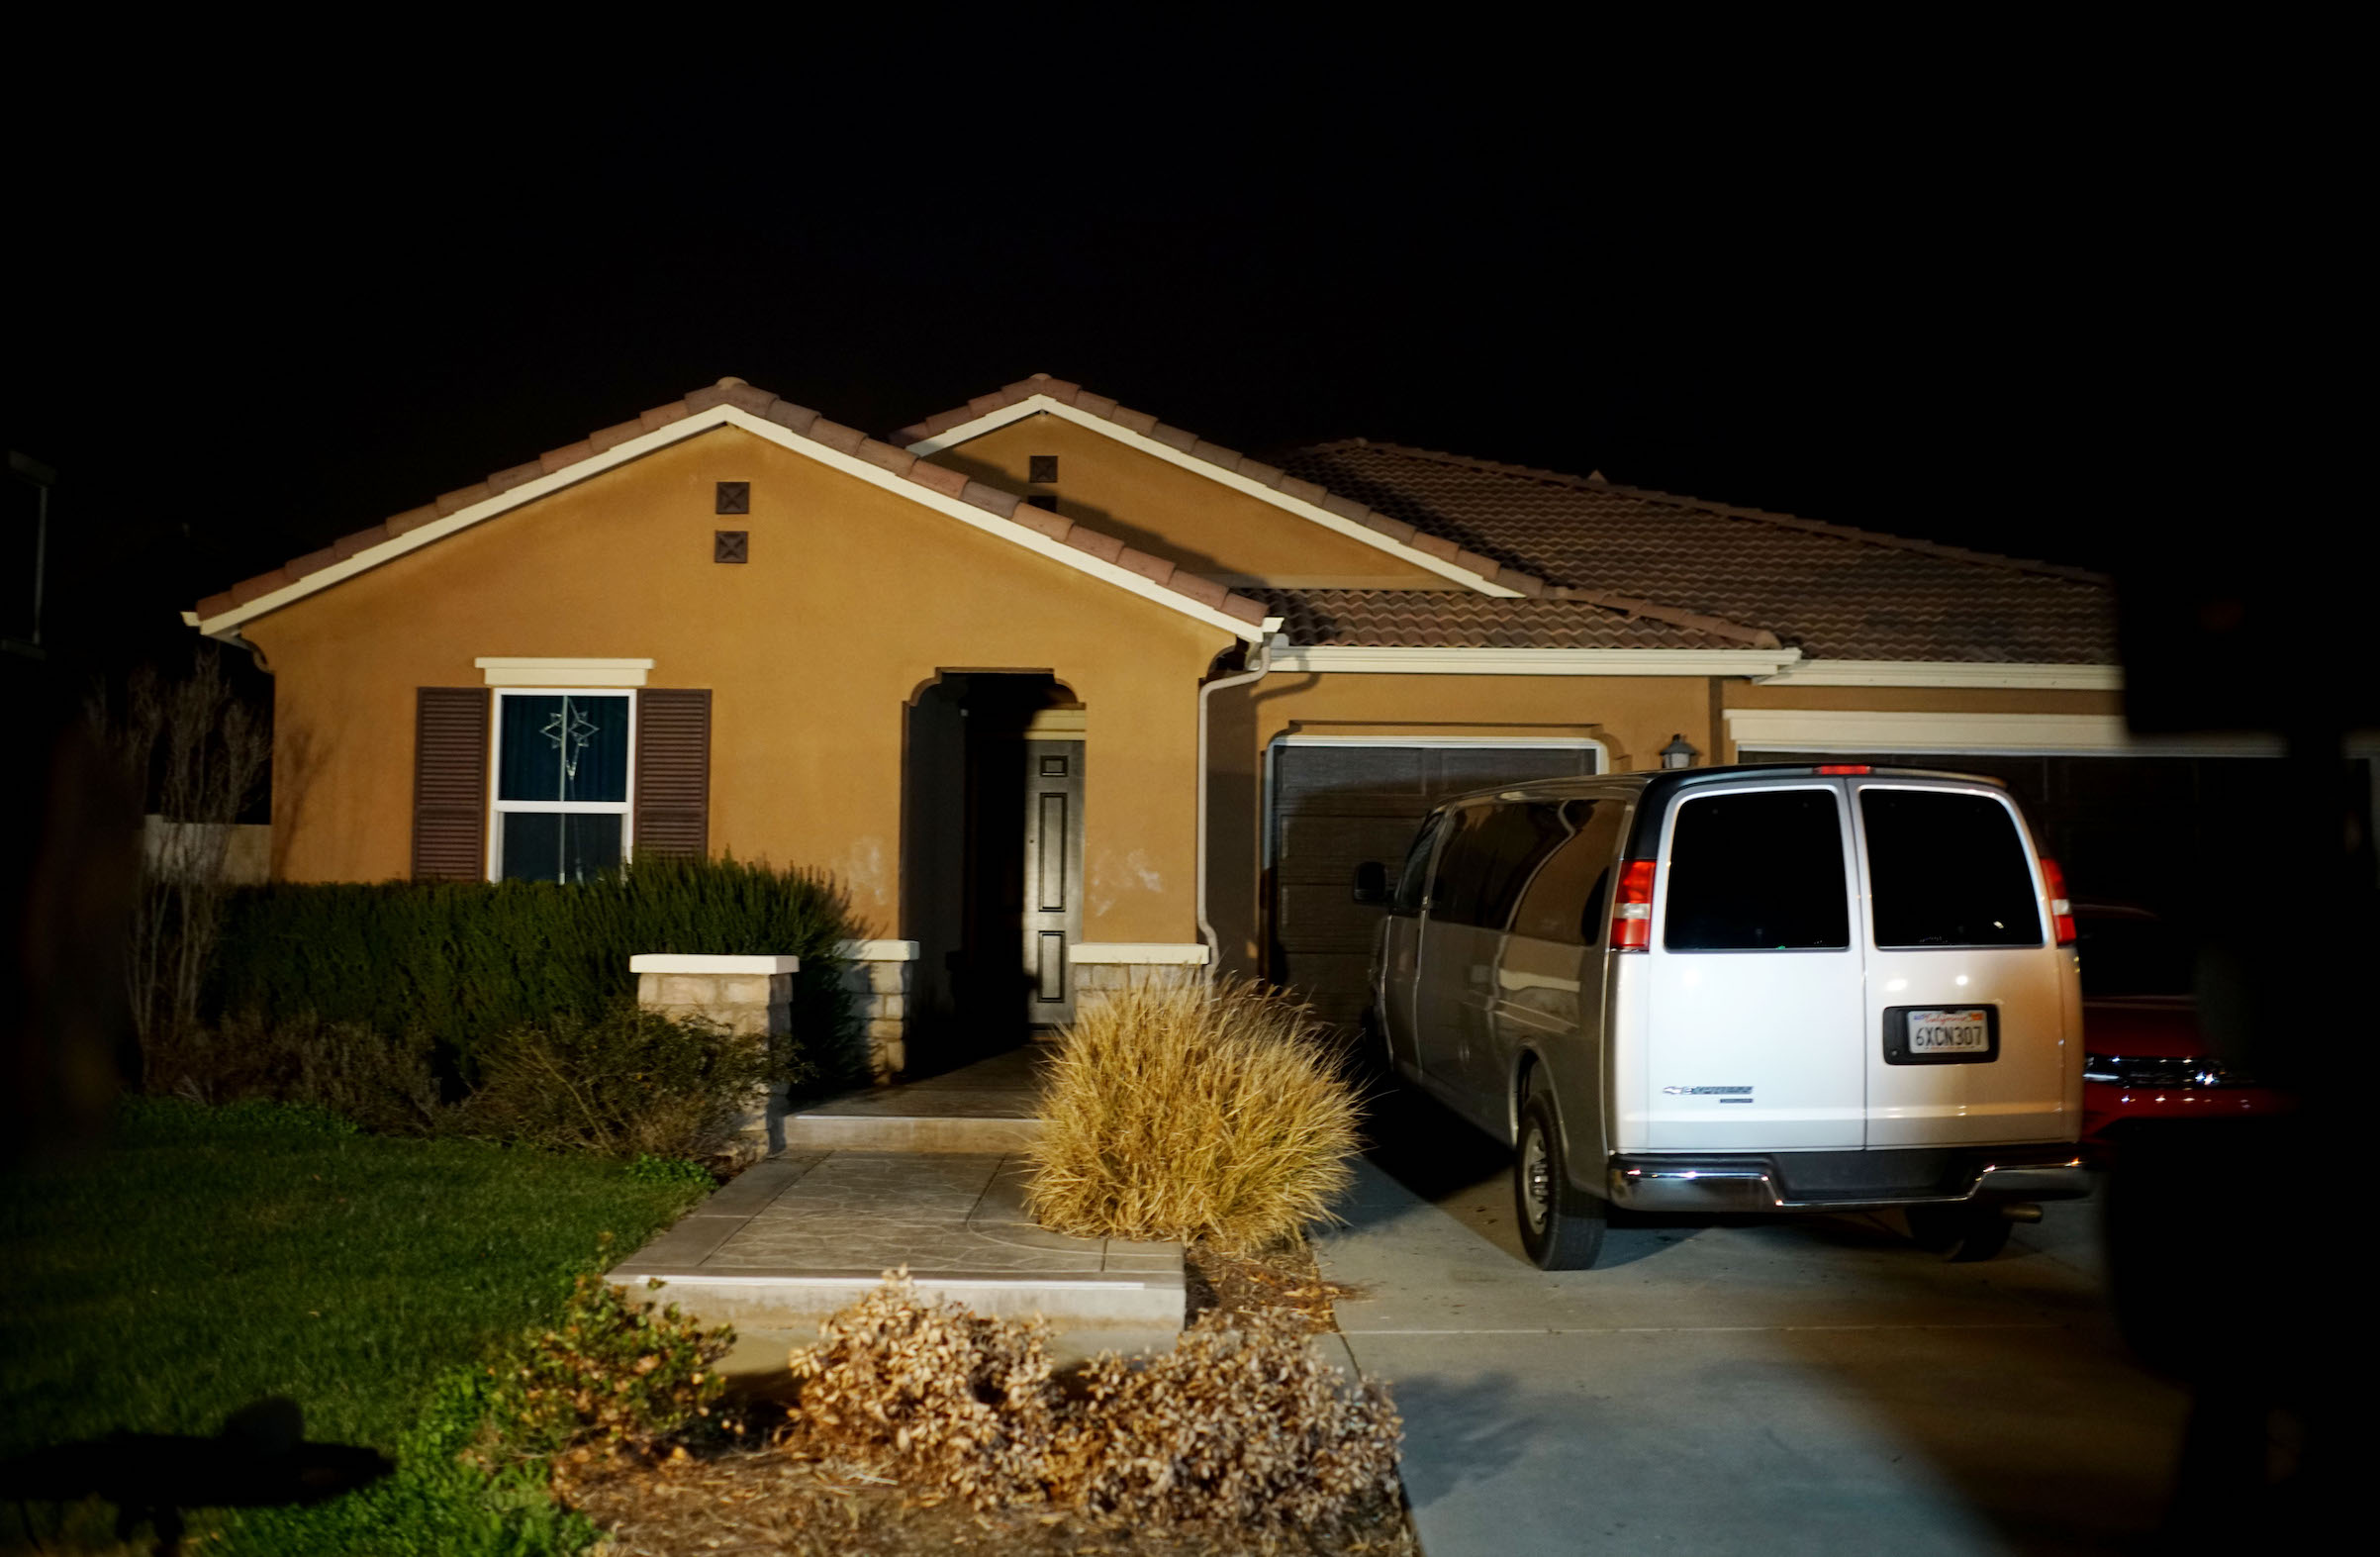 The home where a couple was arrested after police discovered that 13 people had been held captive is shown Jan. 15, 2018 in Perris, California.